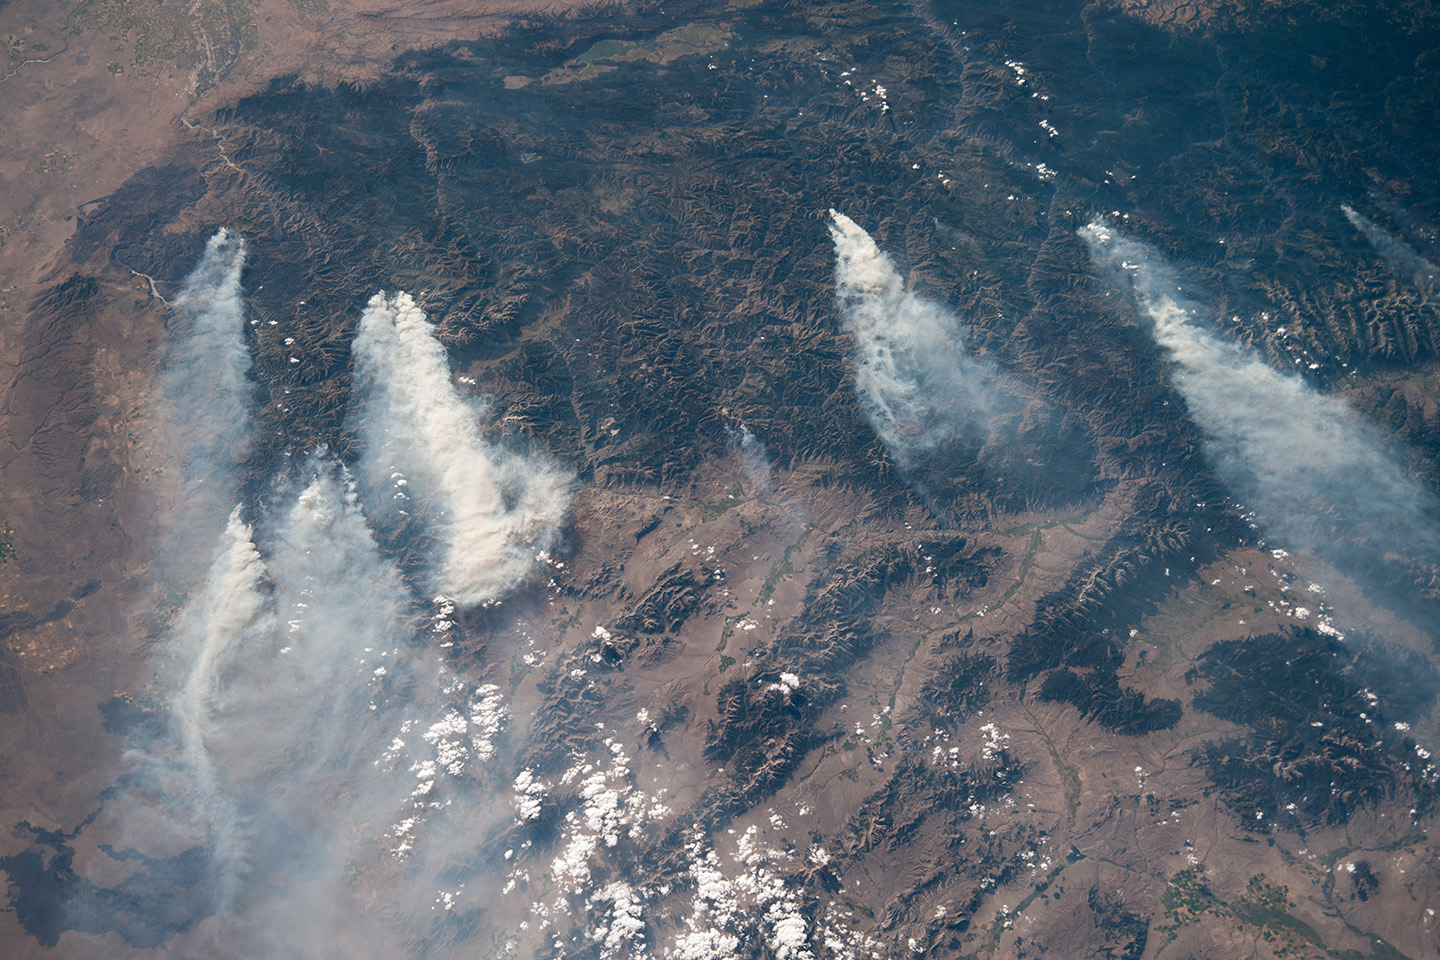 Image from the astronauts aboard the International Space Station, acquired August 18, 2013 -- 50 mm lens. Looking to the west, over Idaho.